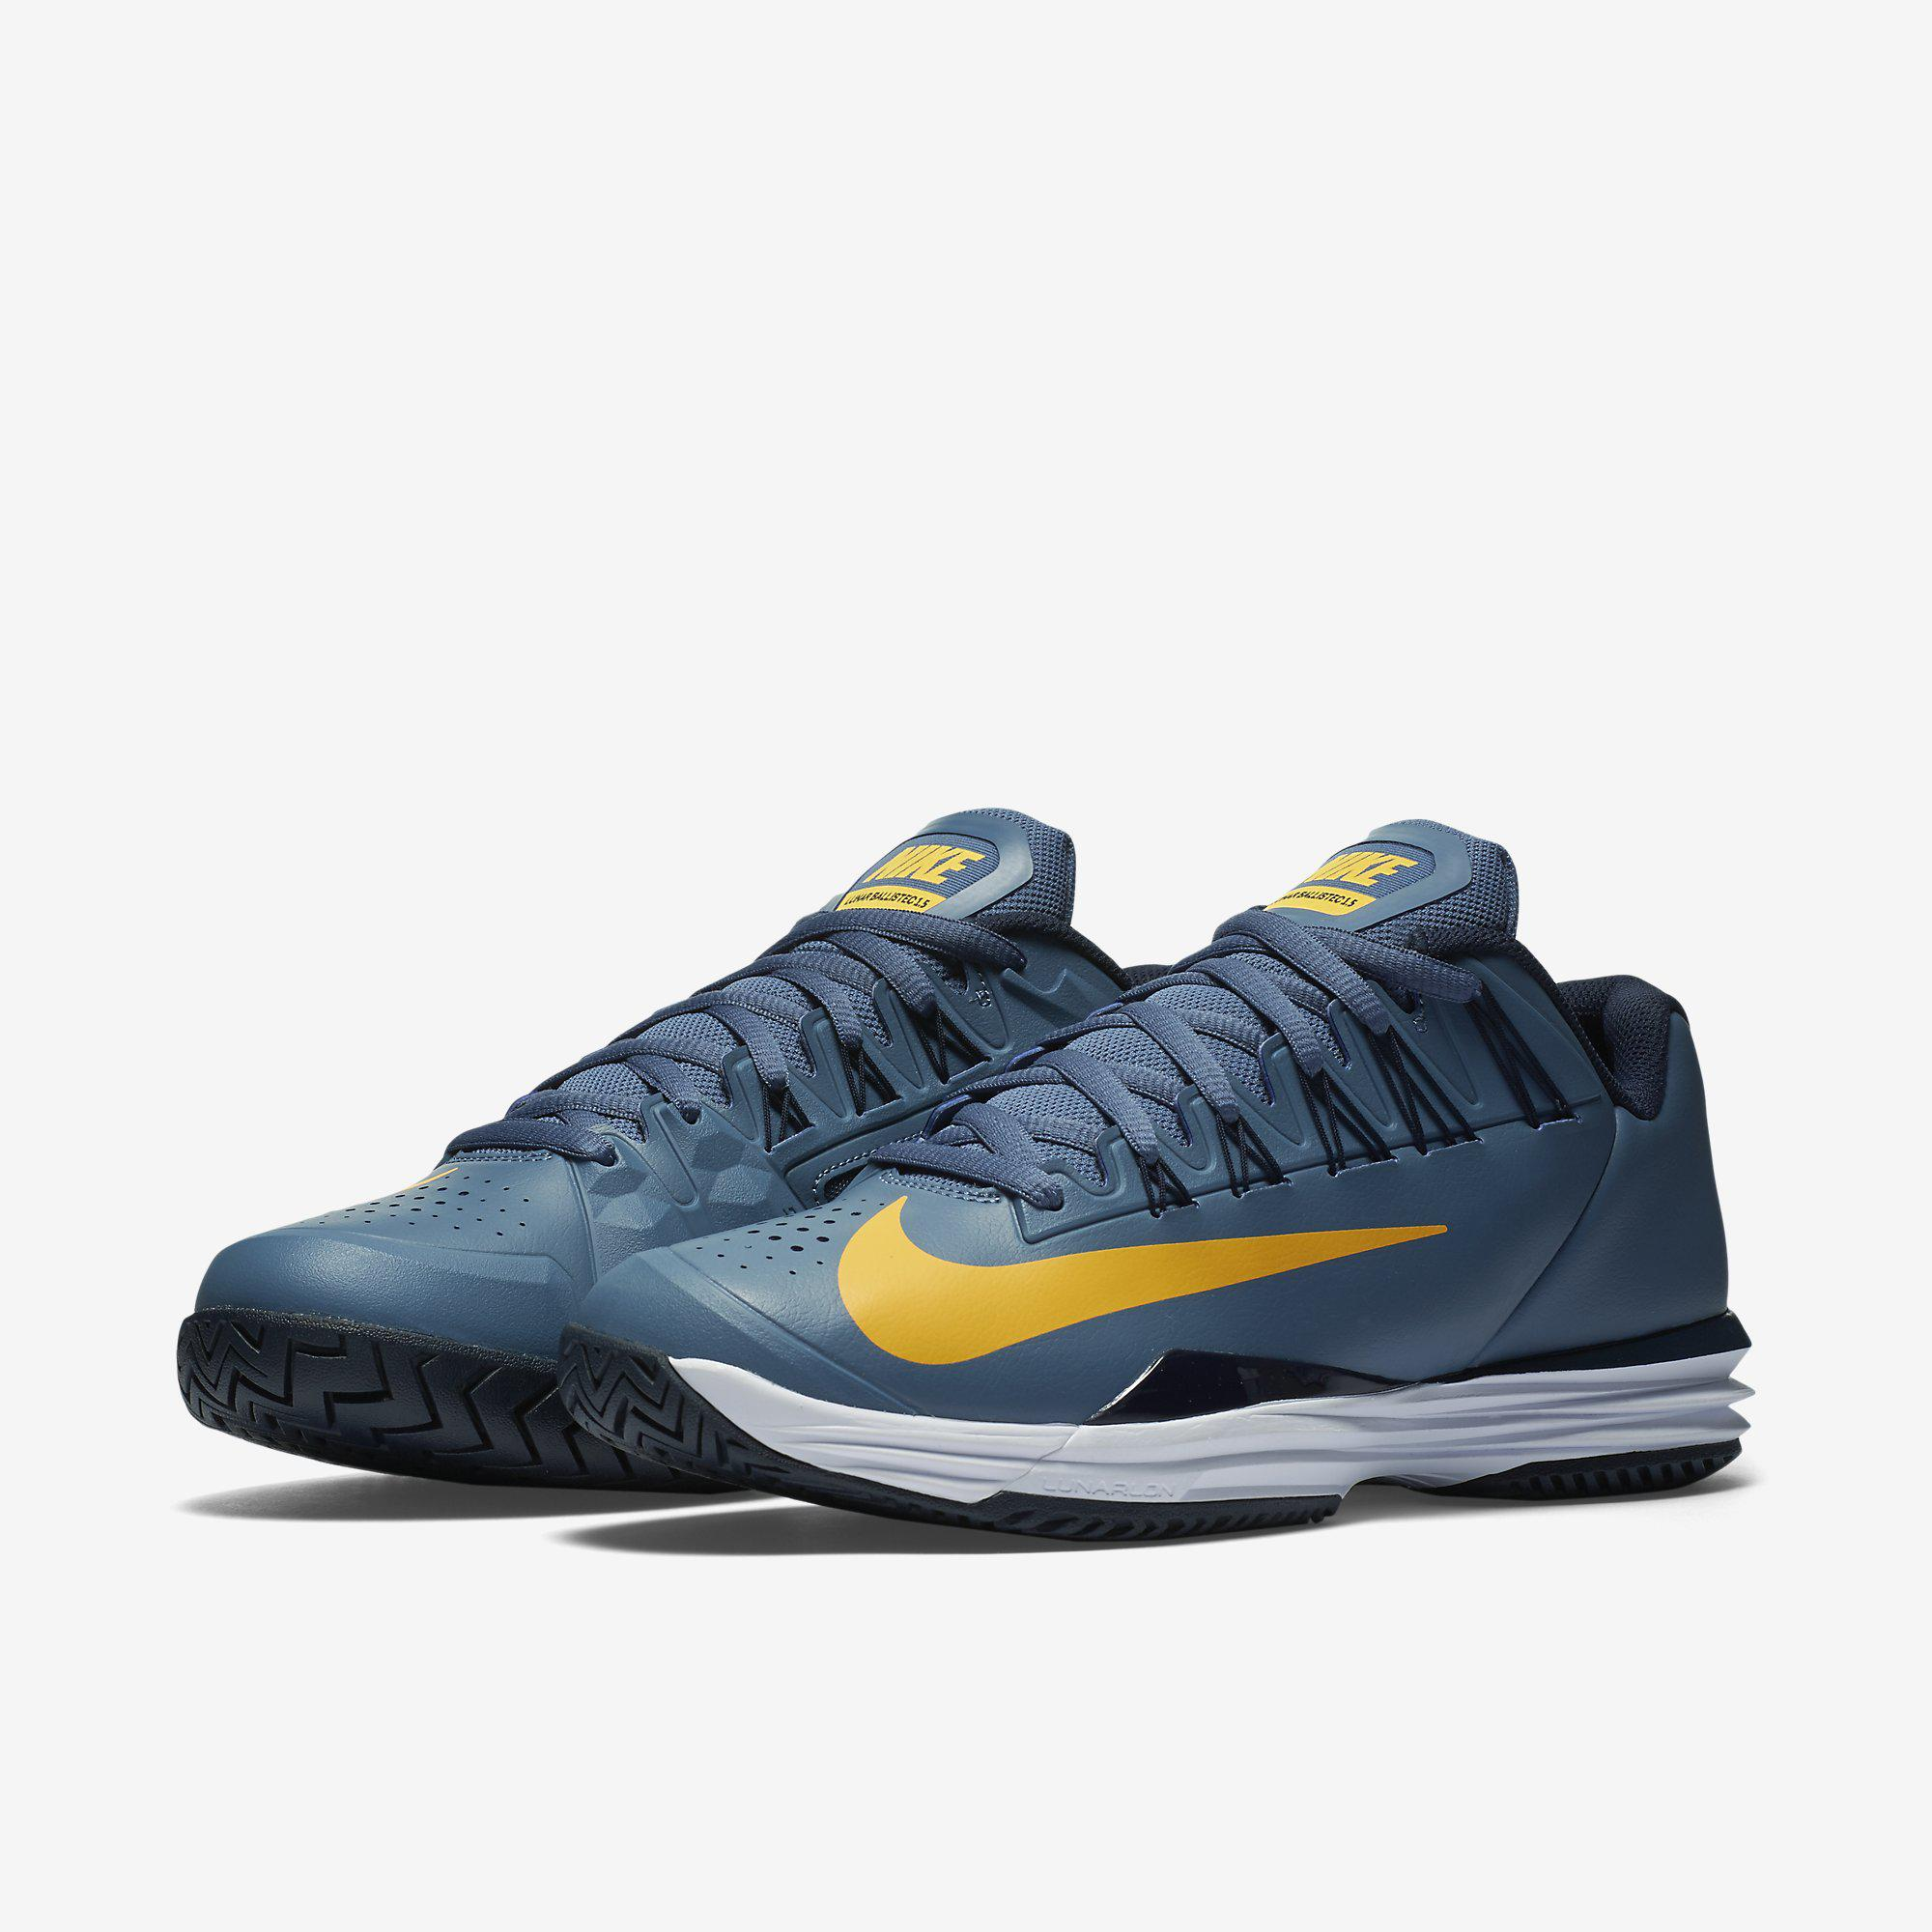 a9b633258b91 Nike Mens Lunar Ballistec 1.5 Tennis Shoes - Blue - Tennisnuts.com